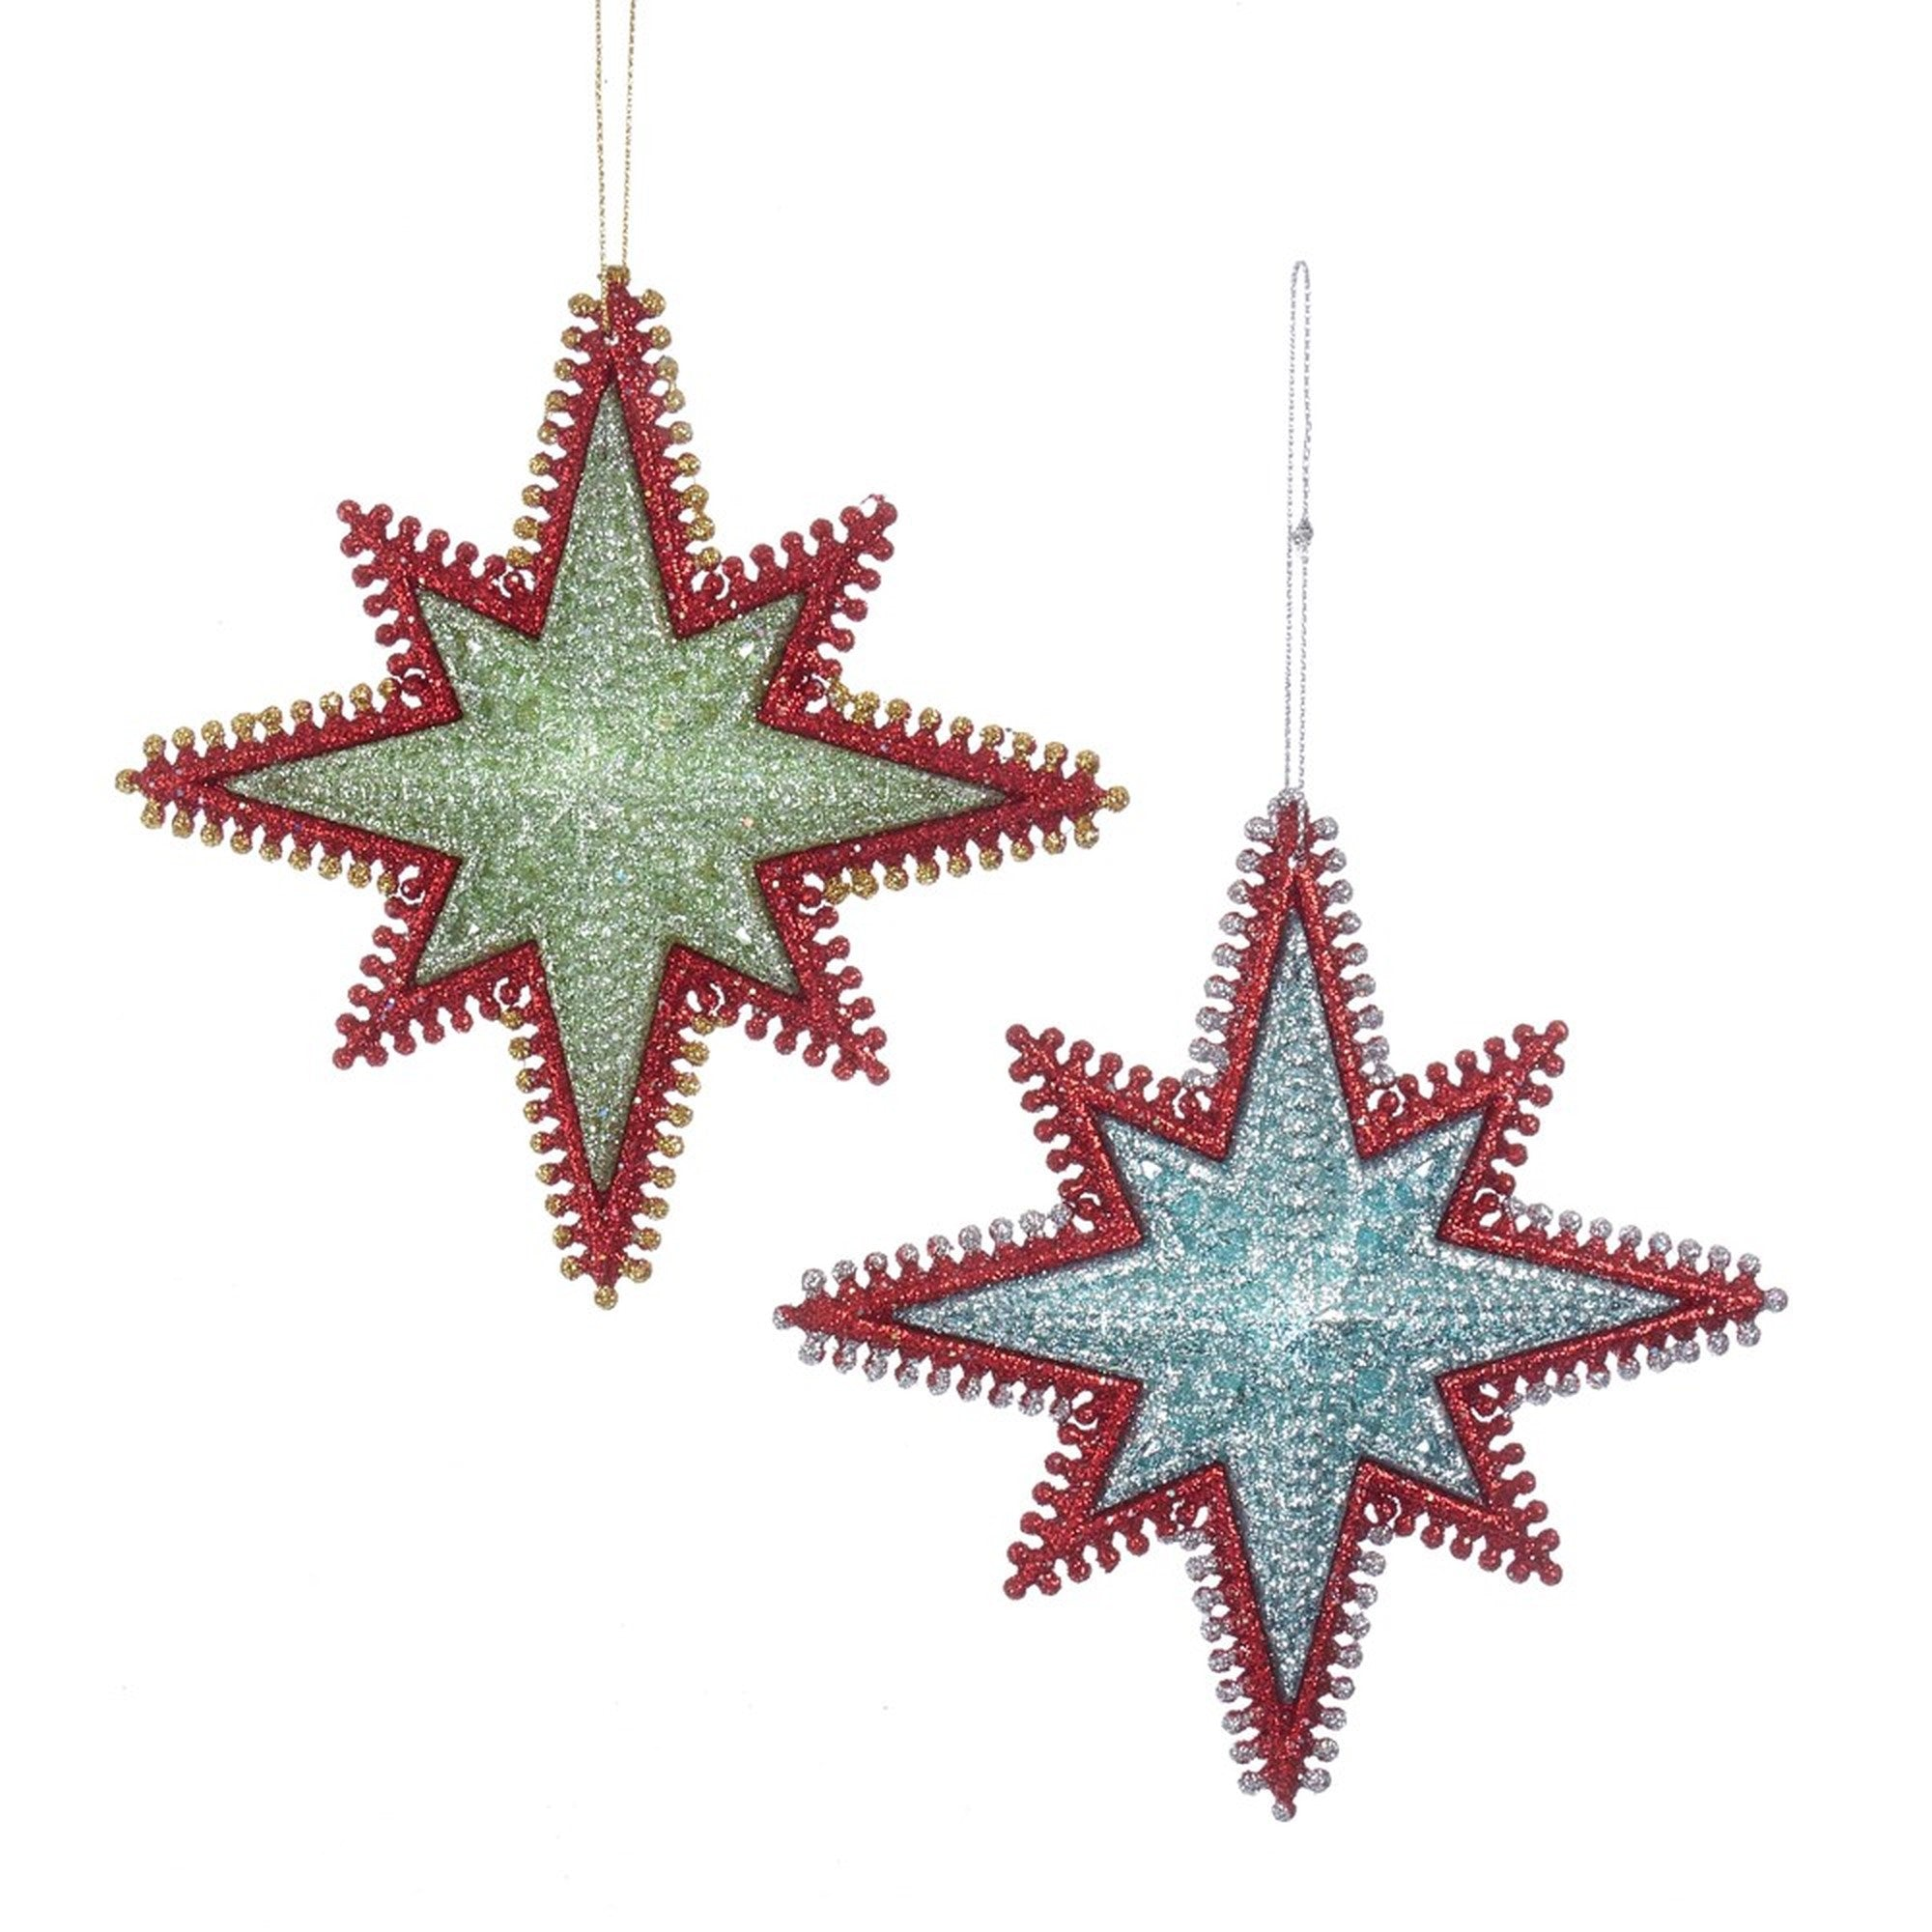 Kurt Adler Aqua and Green Starbursts With Red Edging Ornaments | Putti Christmas